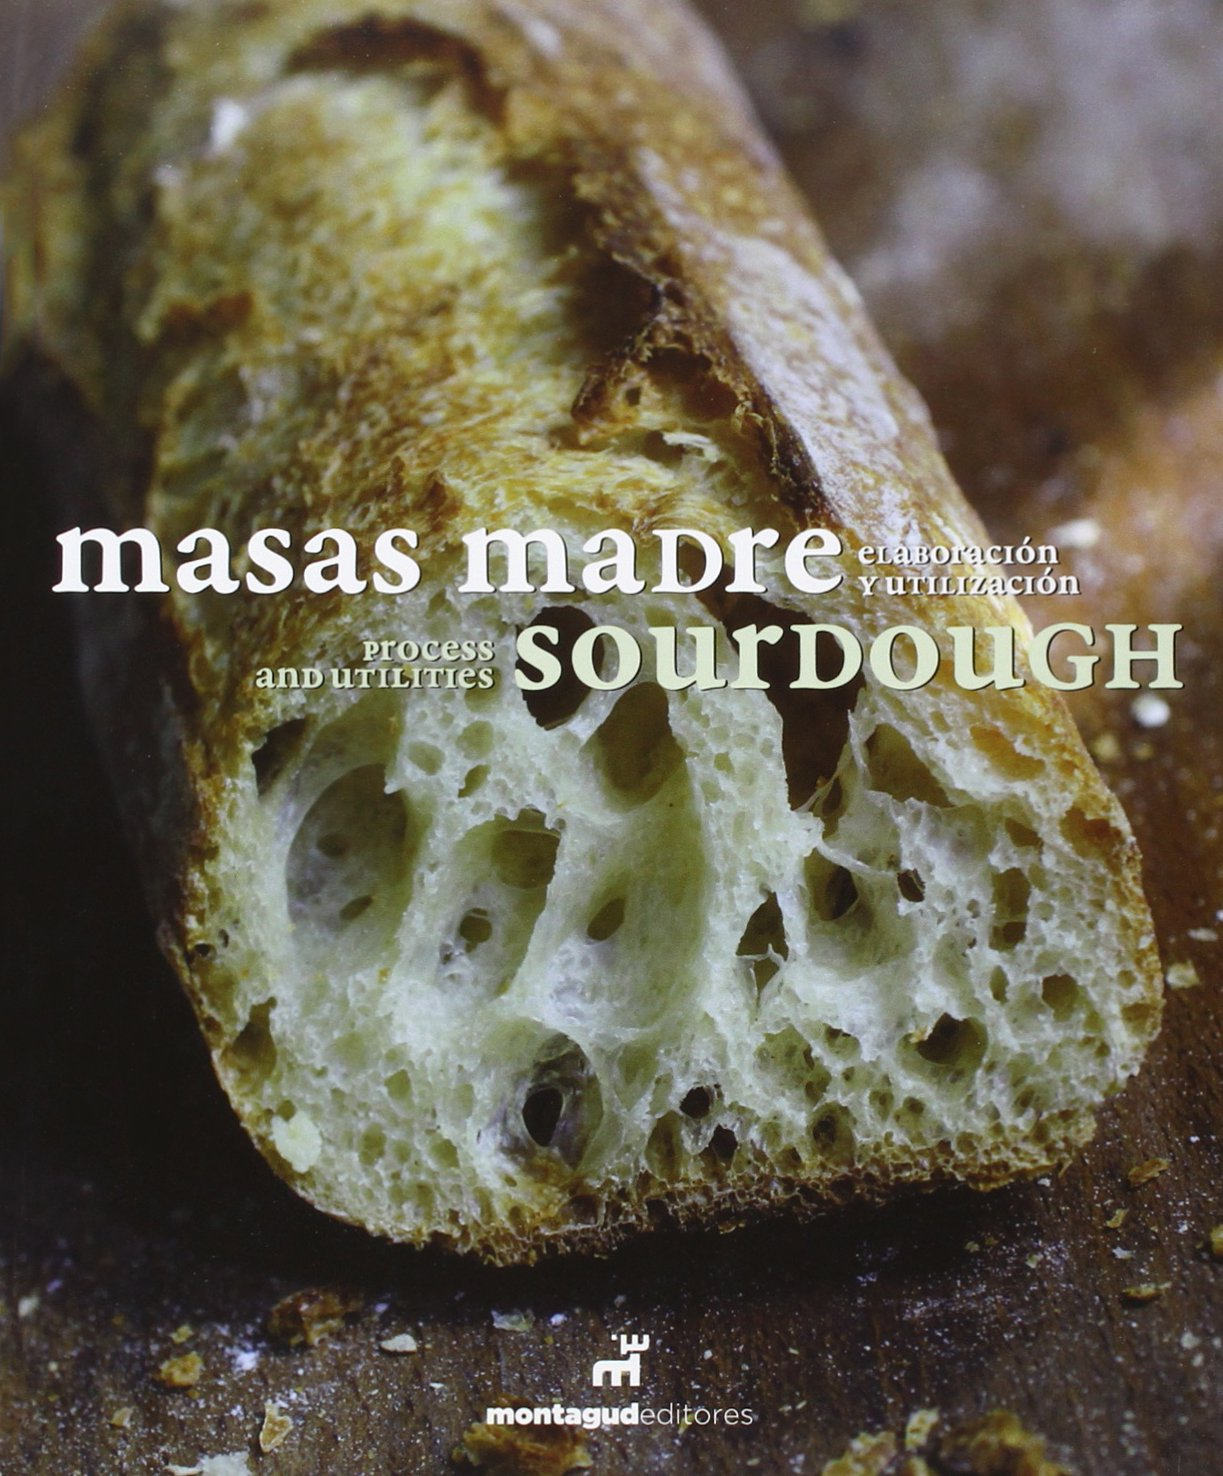 Masas Madre. Sourdough - Edición Bilingüe: Amazon.es ...